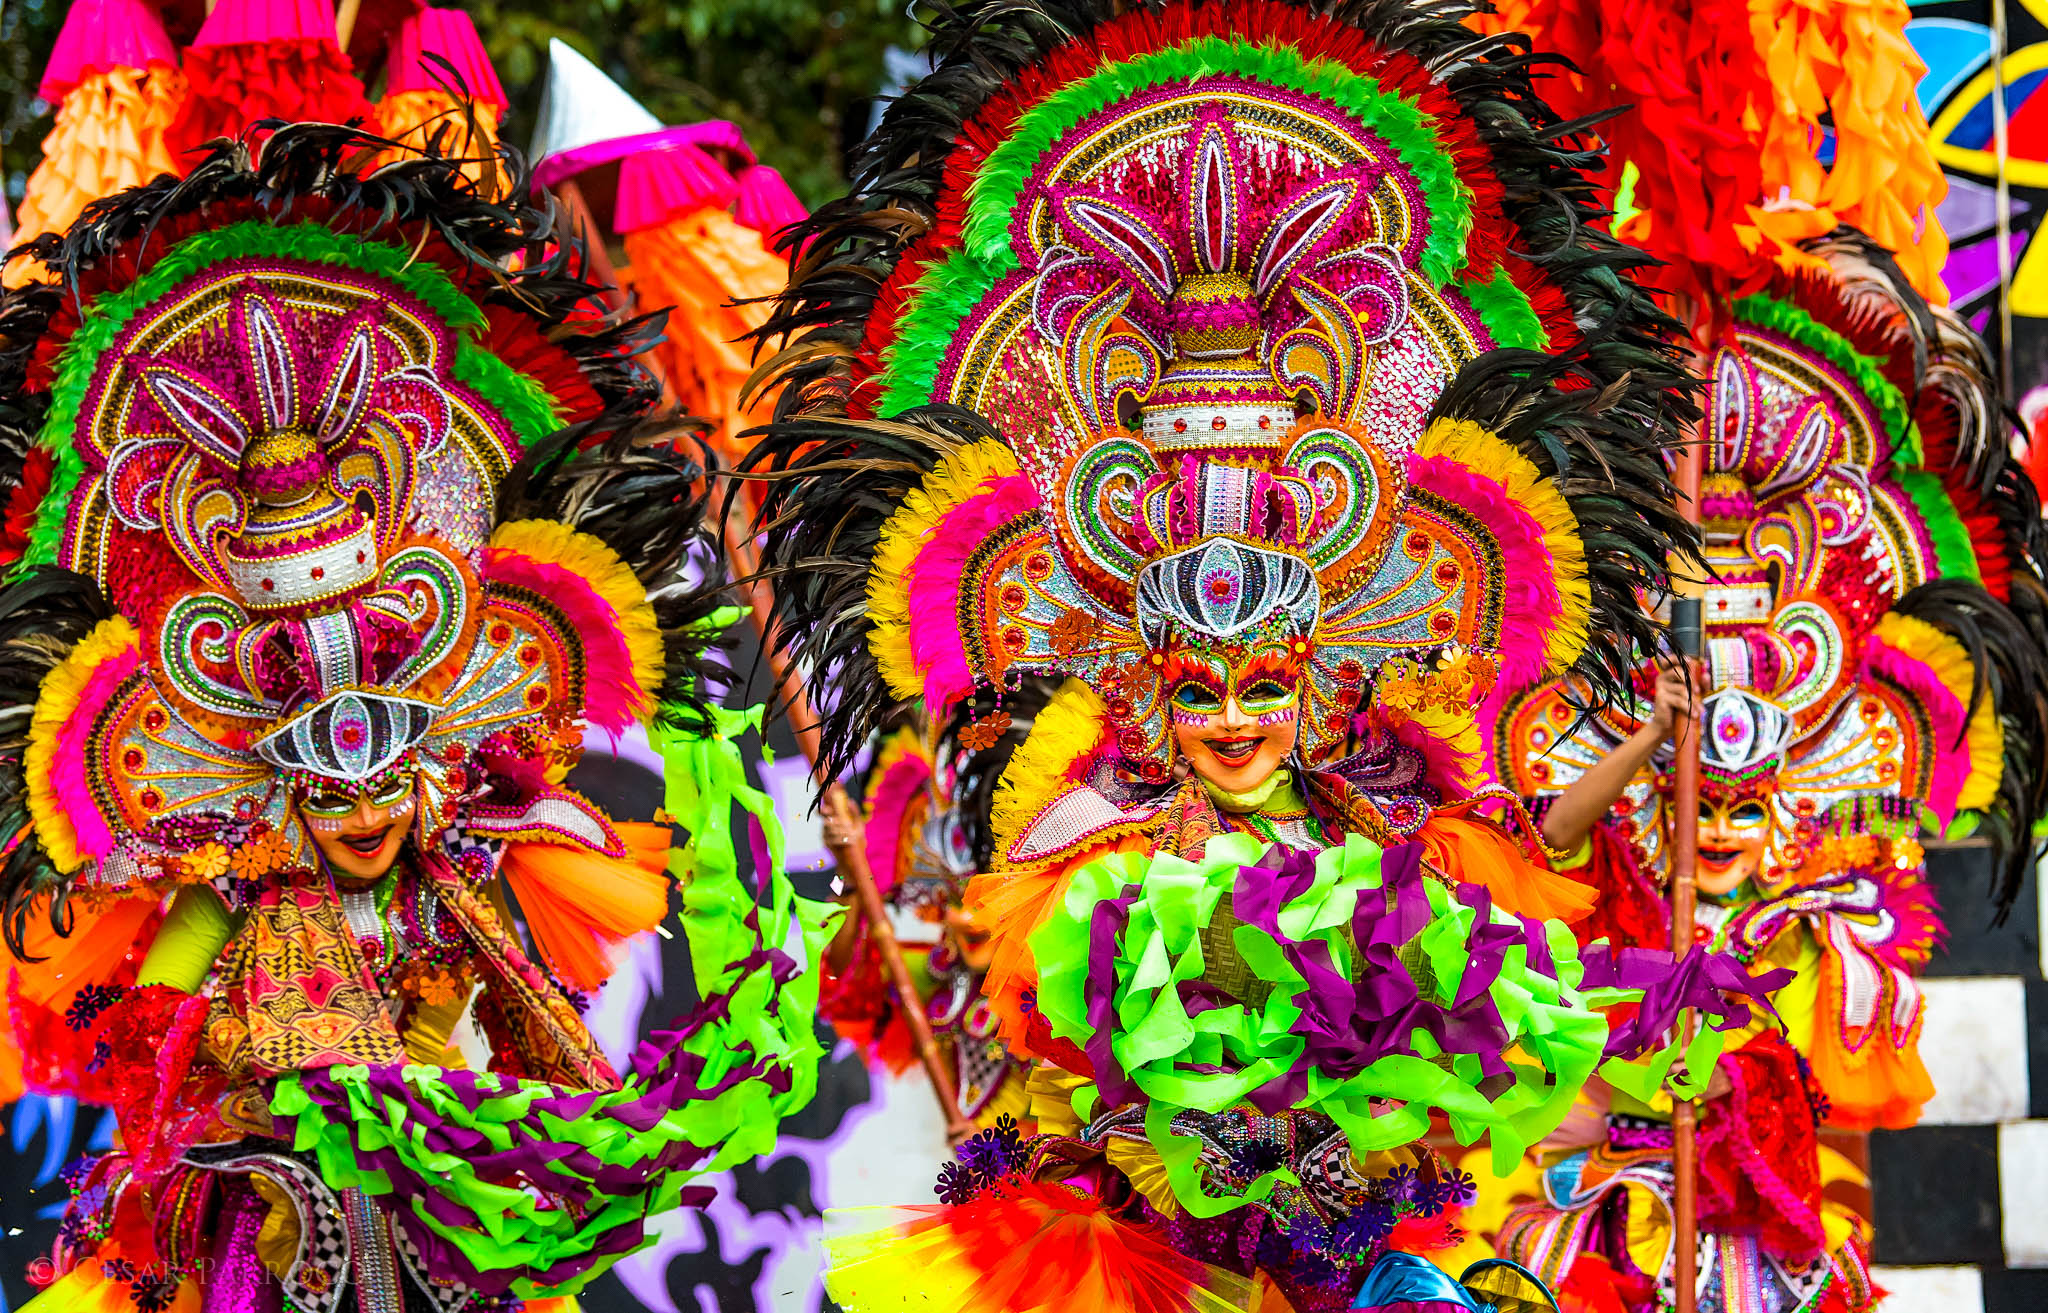 A festival parade of dancers in colorful costumes and masks